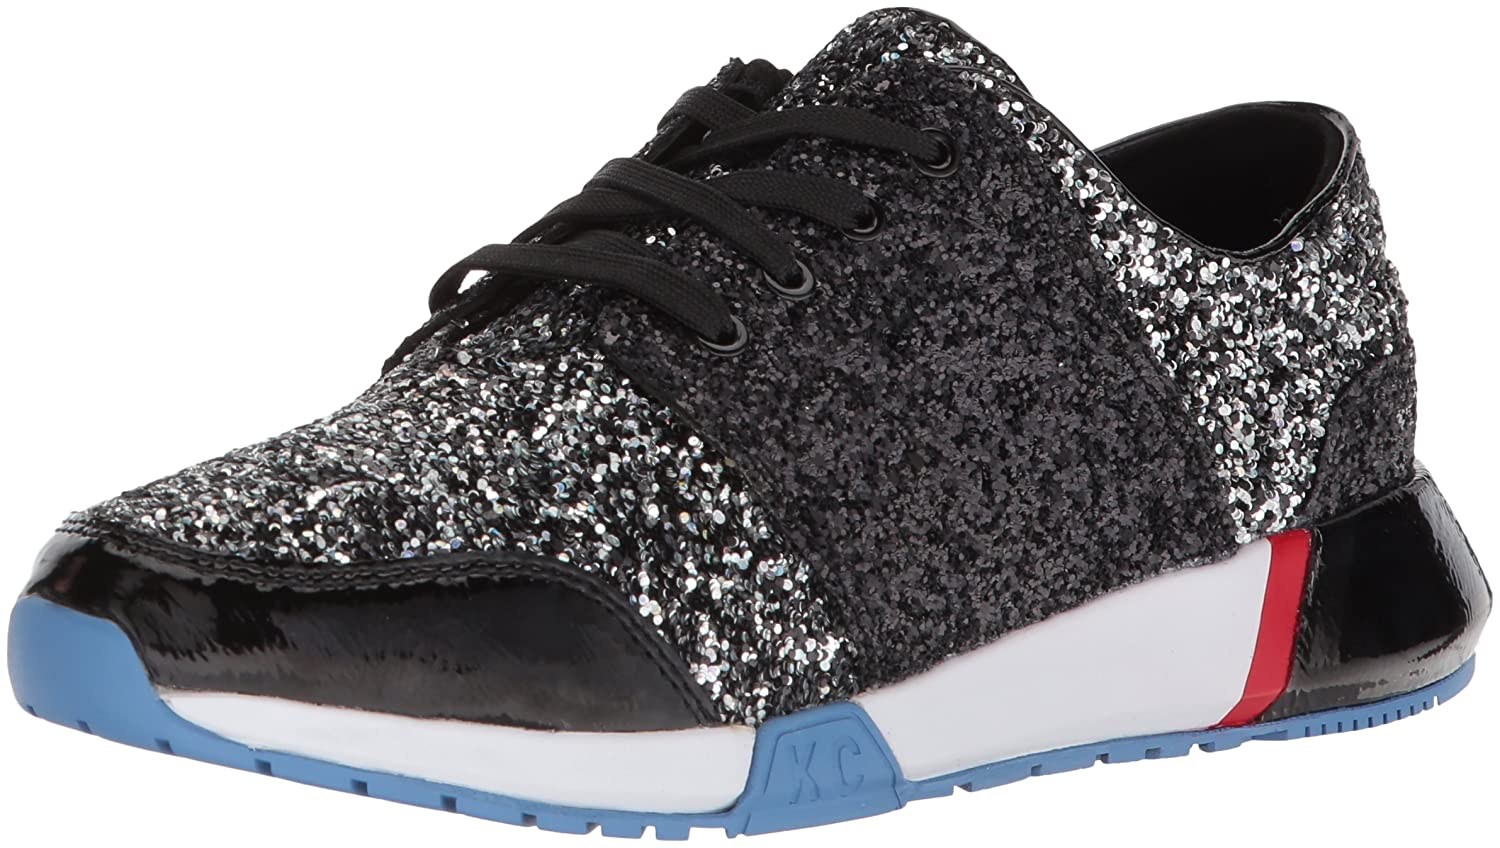 Kenneth Cole New York Women's Sumner Lace-up Jogger Sneaker B0794XPC51 9 B(M) US|Black